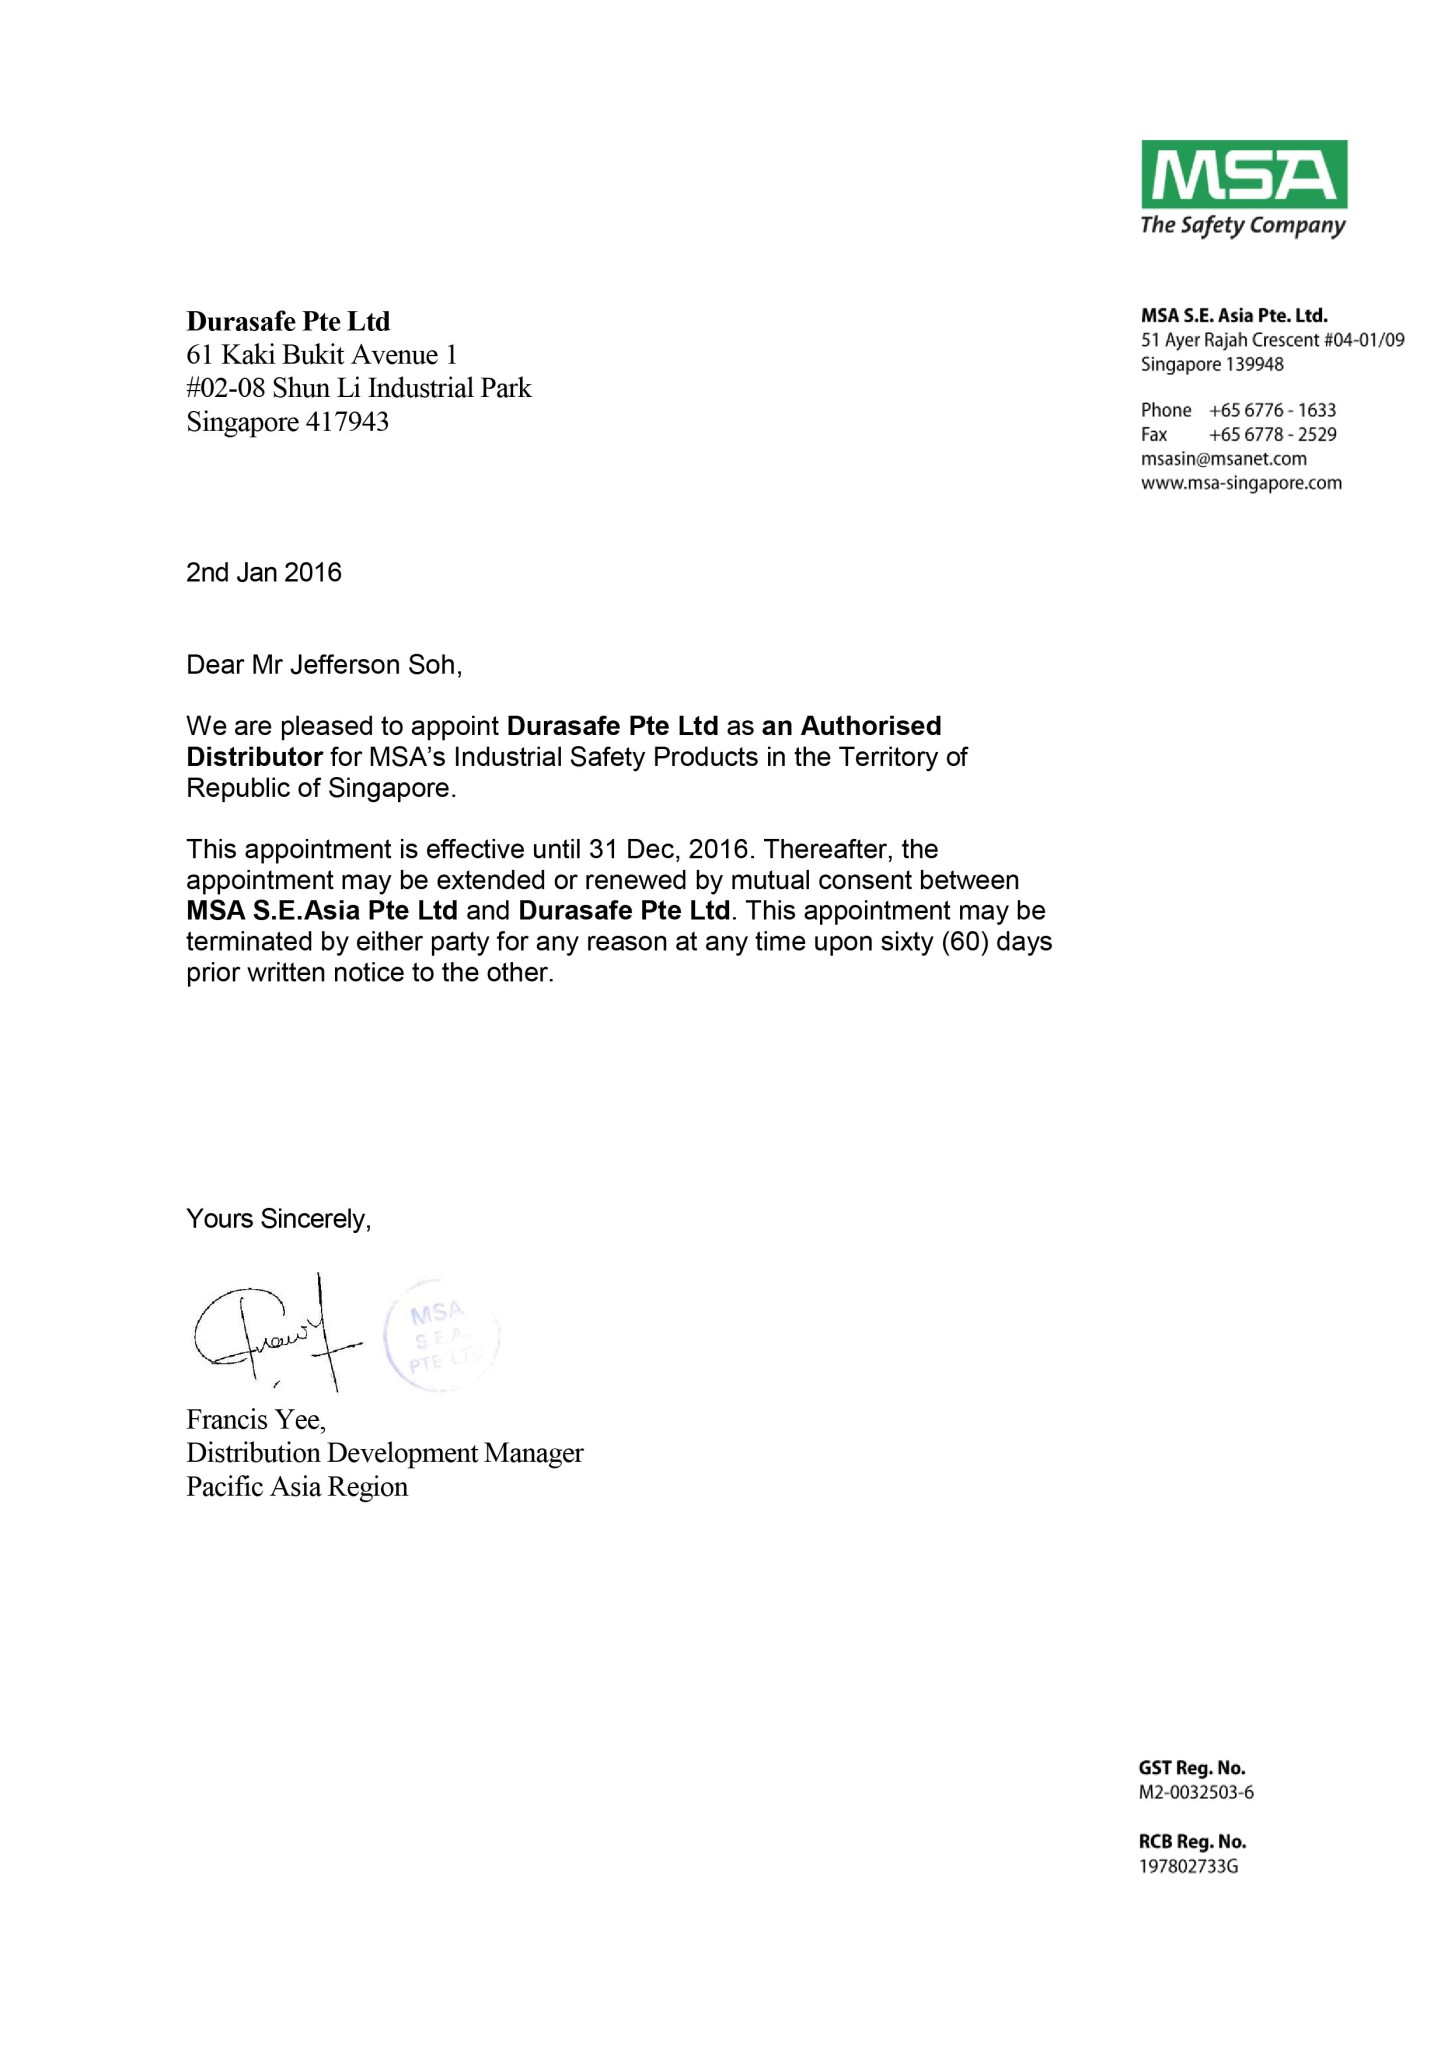 Distributor Appointment Letter - Durasafe 2016-01